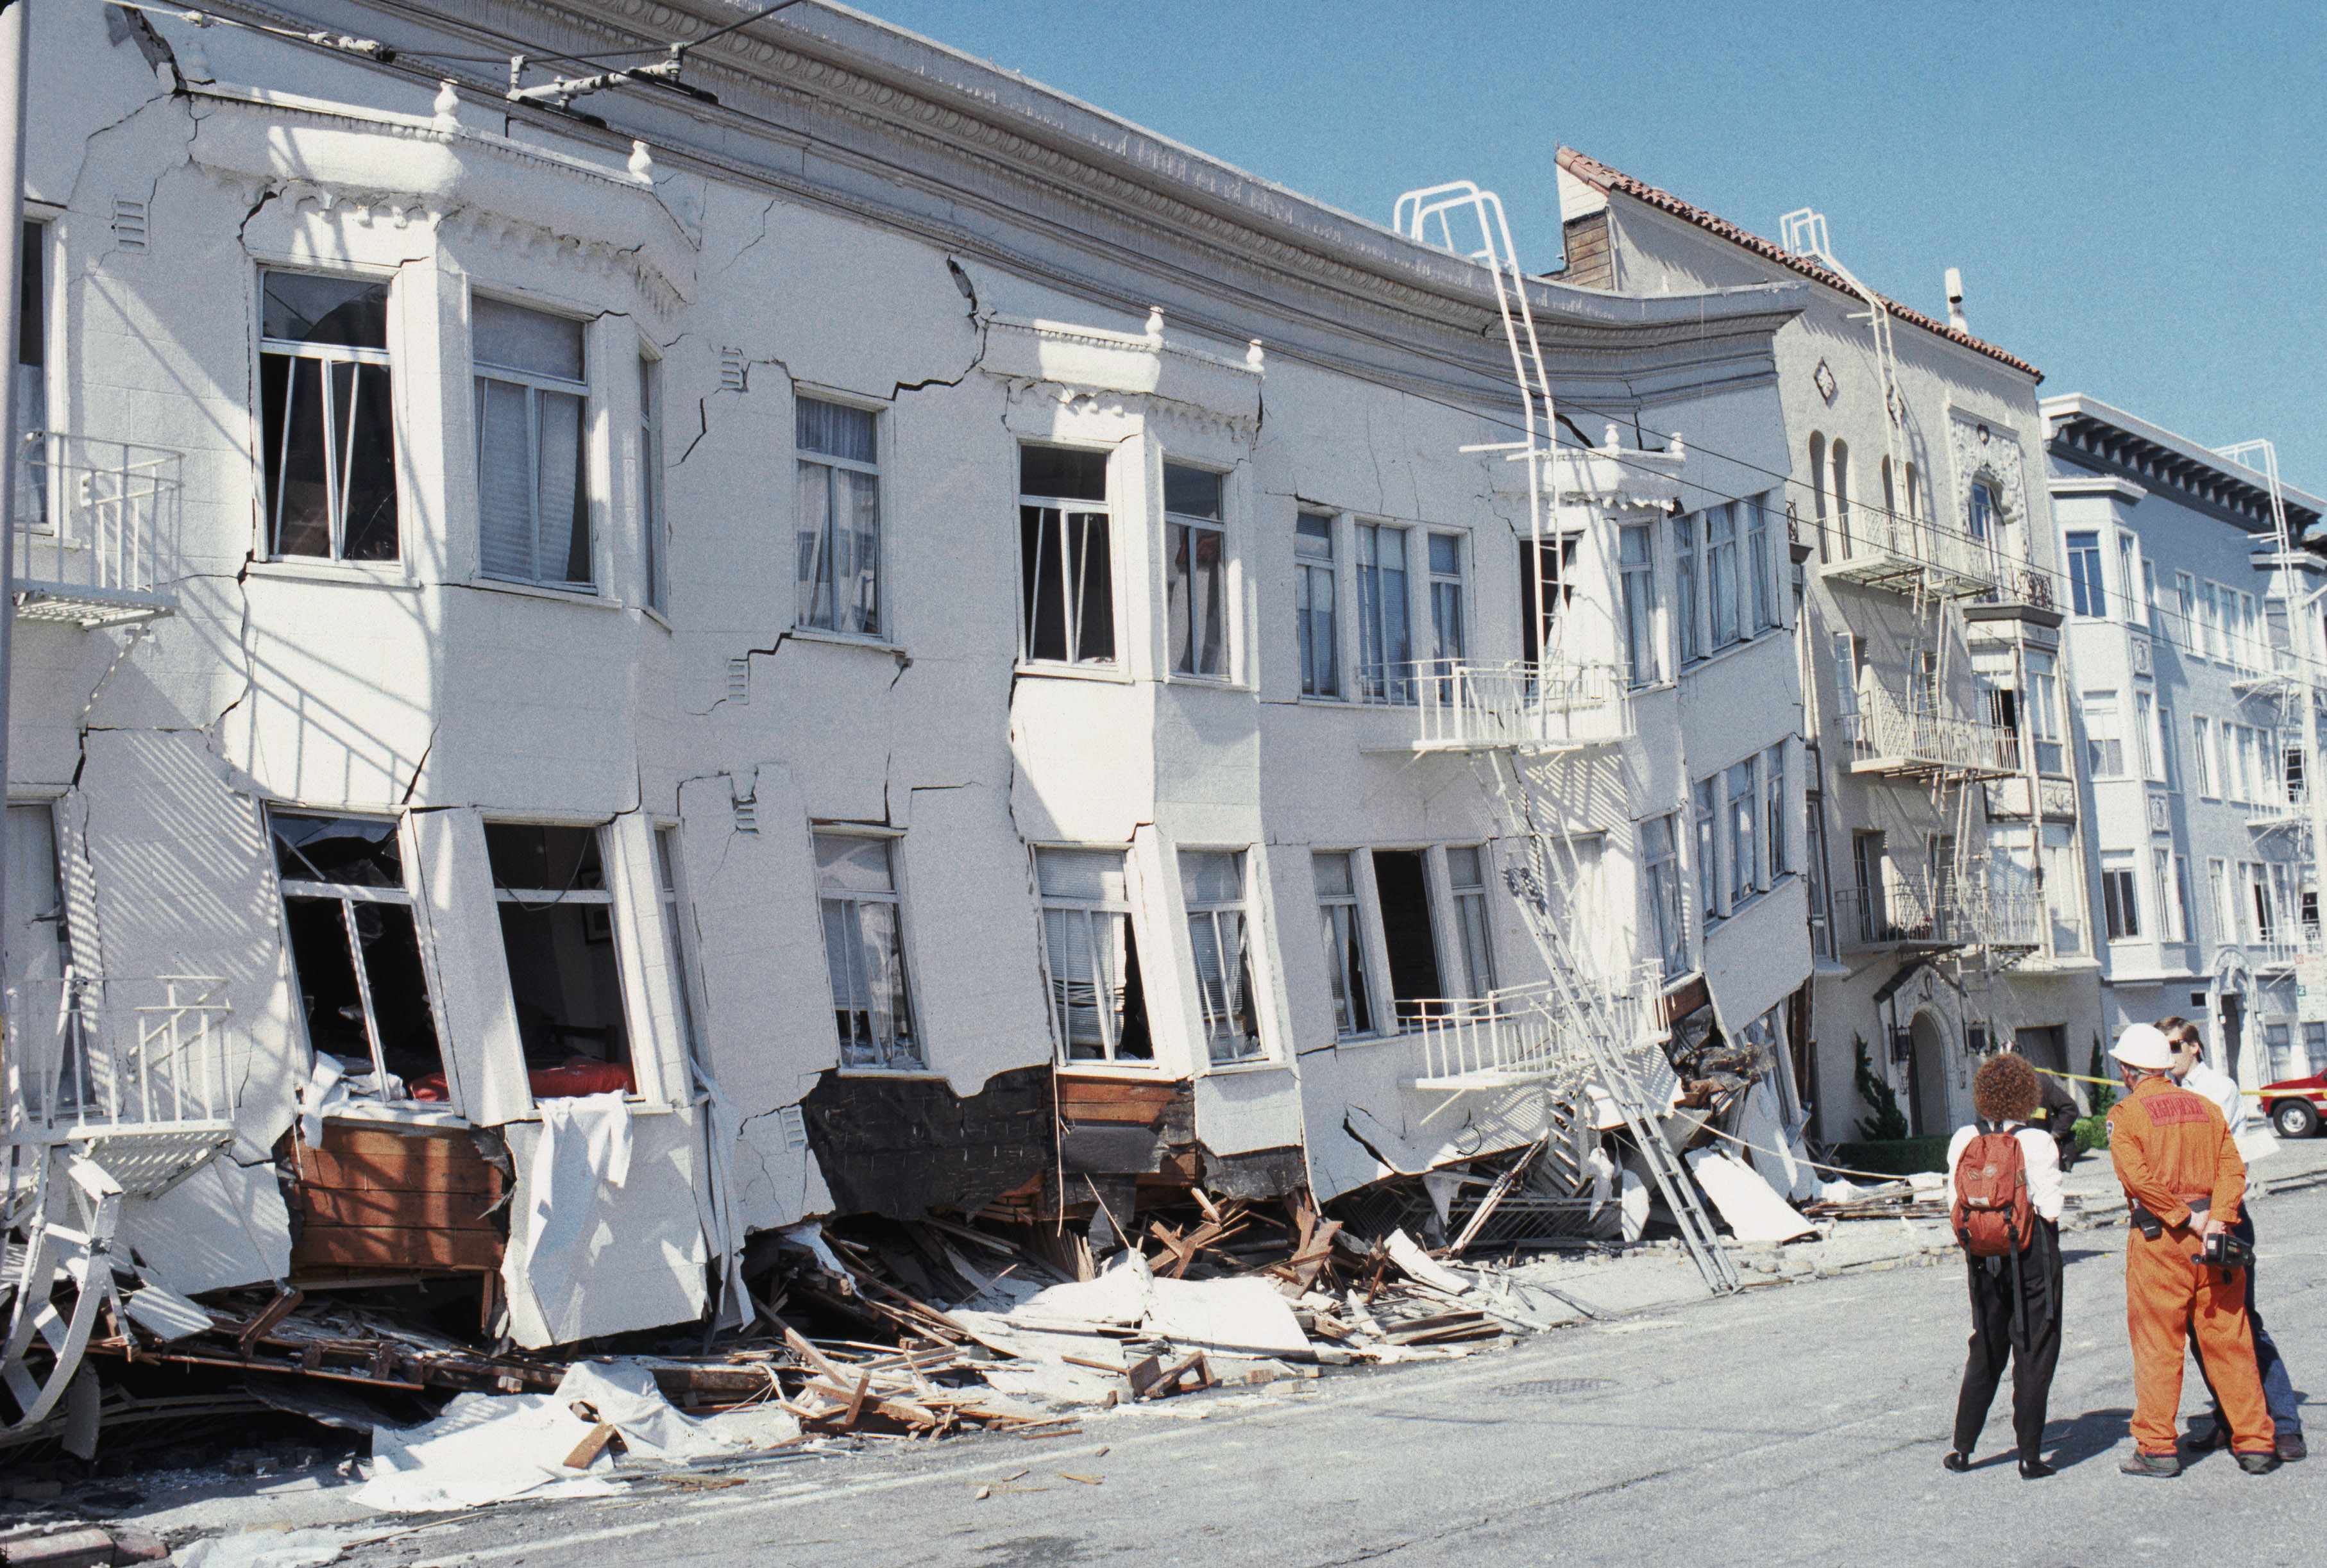 The Marina district disaster zone after an earthquake, measuring 7.1 on the richter scale on Oct. 17, 1989 in San Francisco.